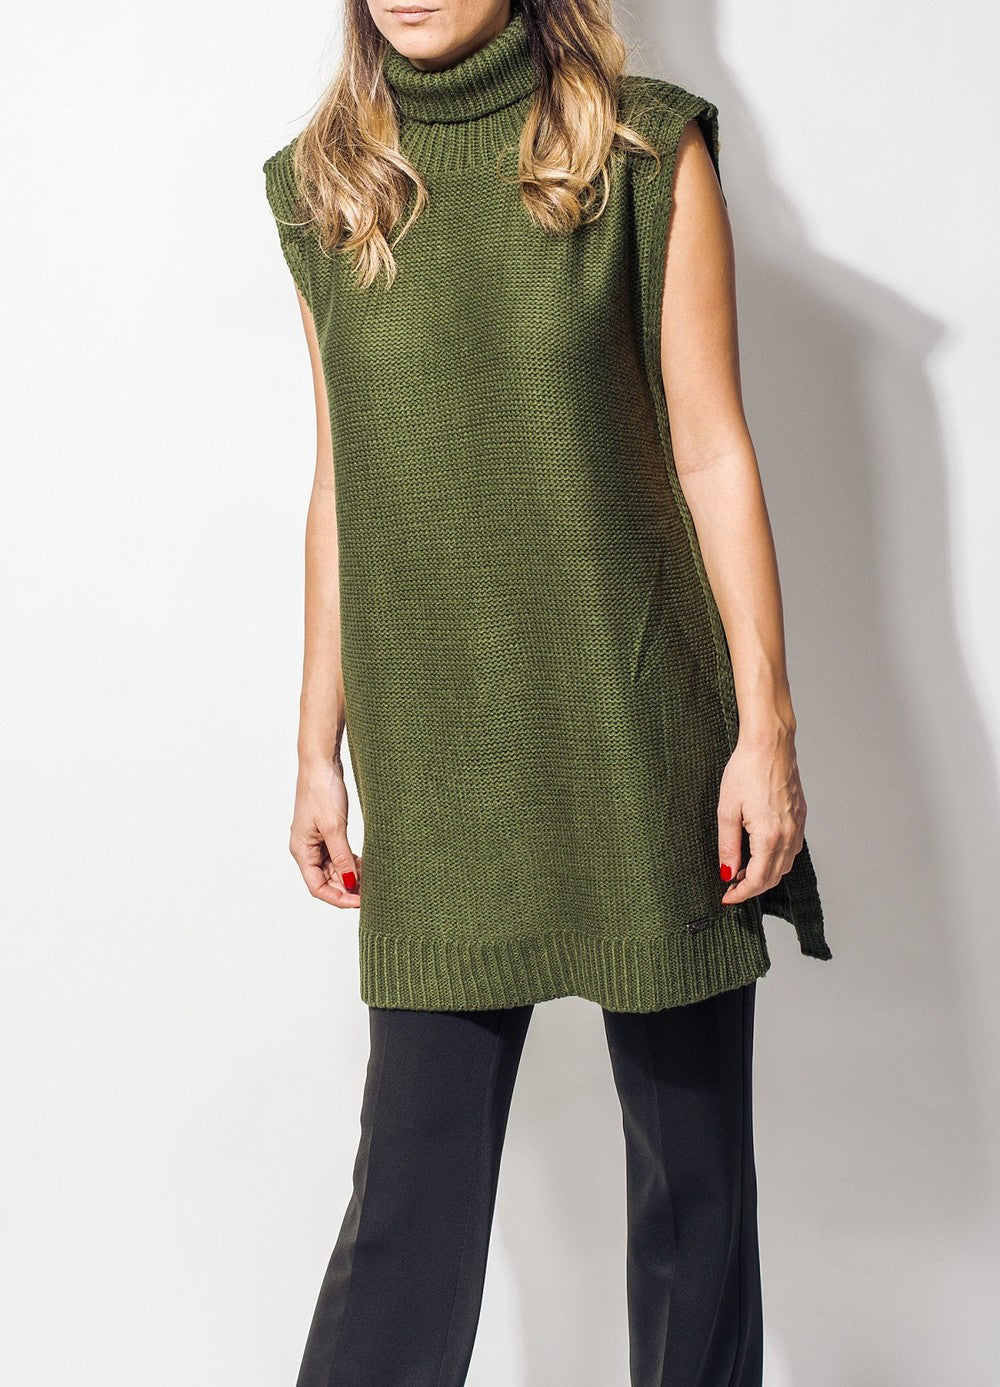 Sleeveless Dark Green Sweater